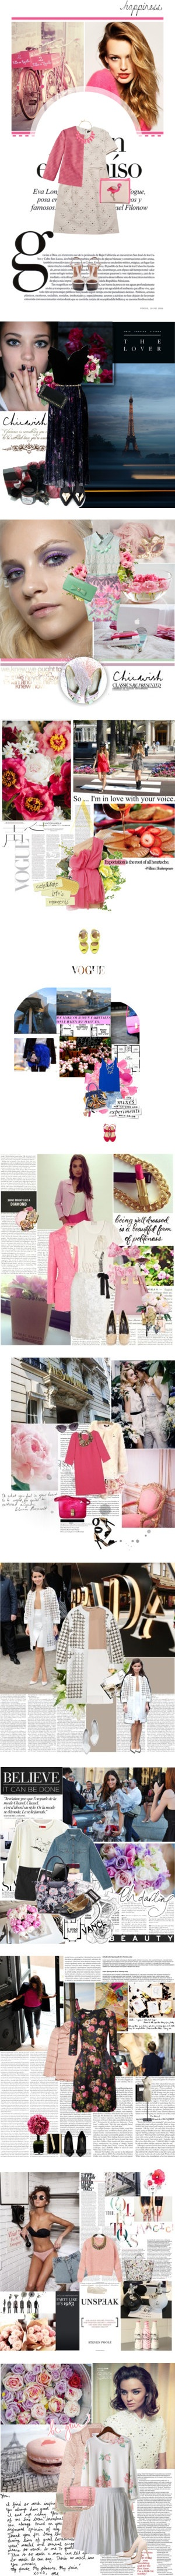 """""""In love 16 *-*"""" by rikka-alethea ❤ liked on Polyvore"""